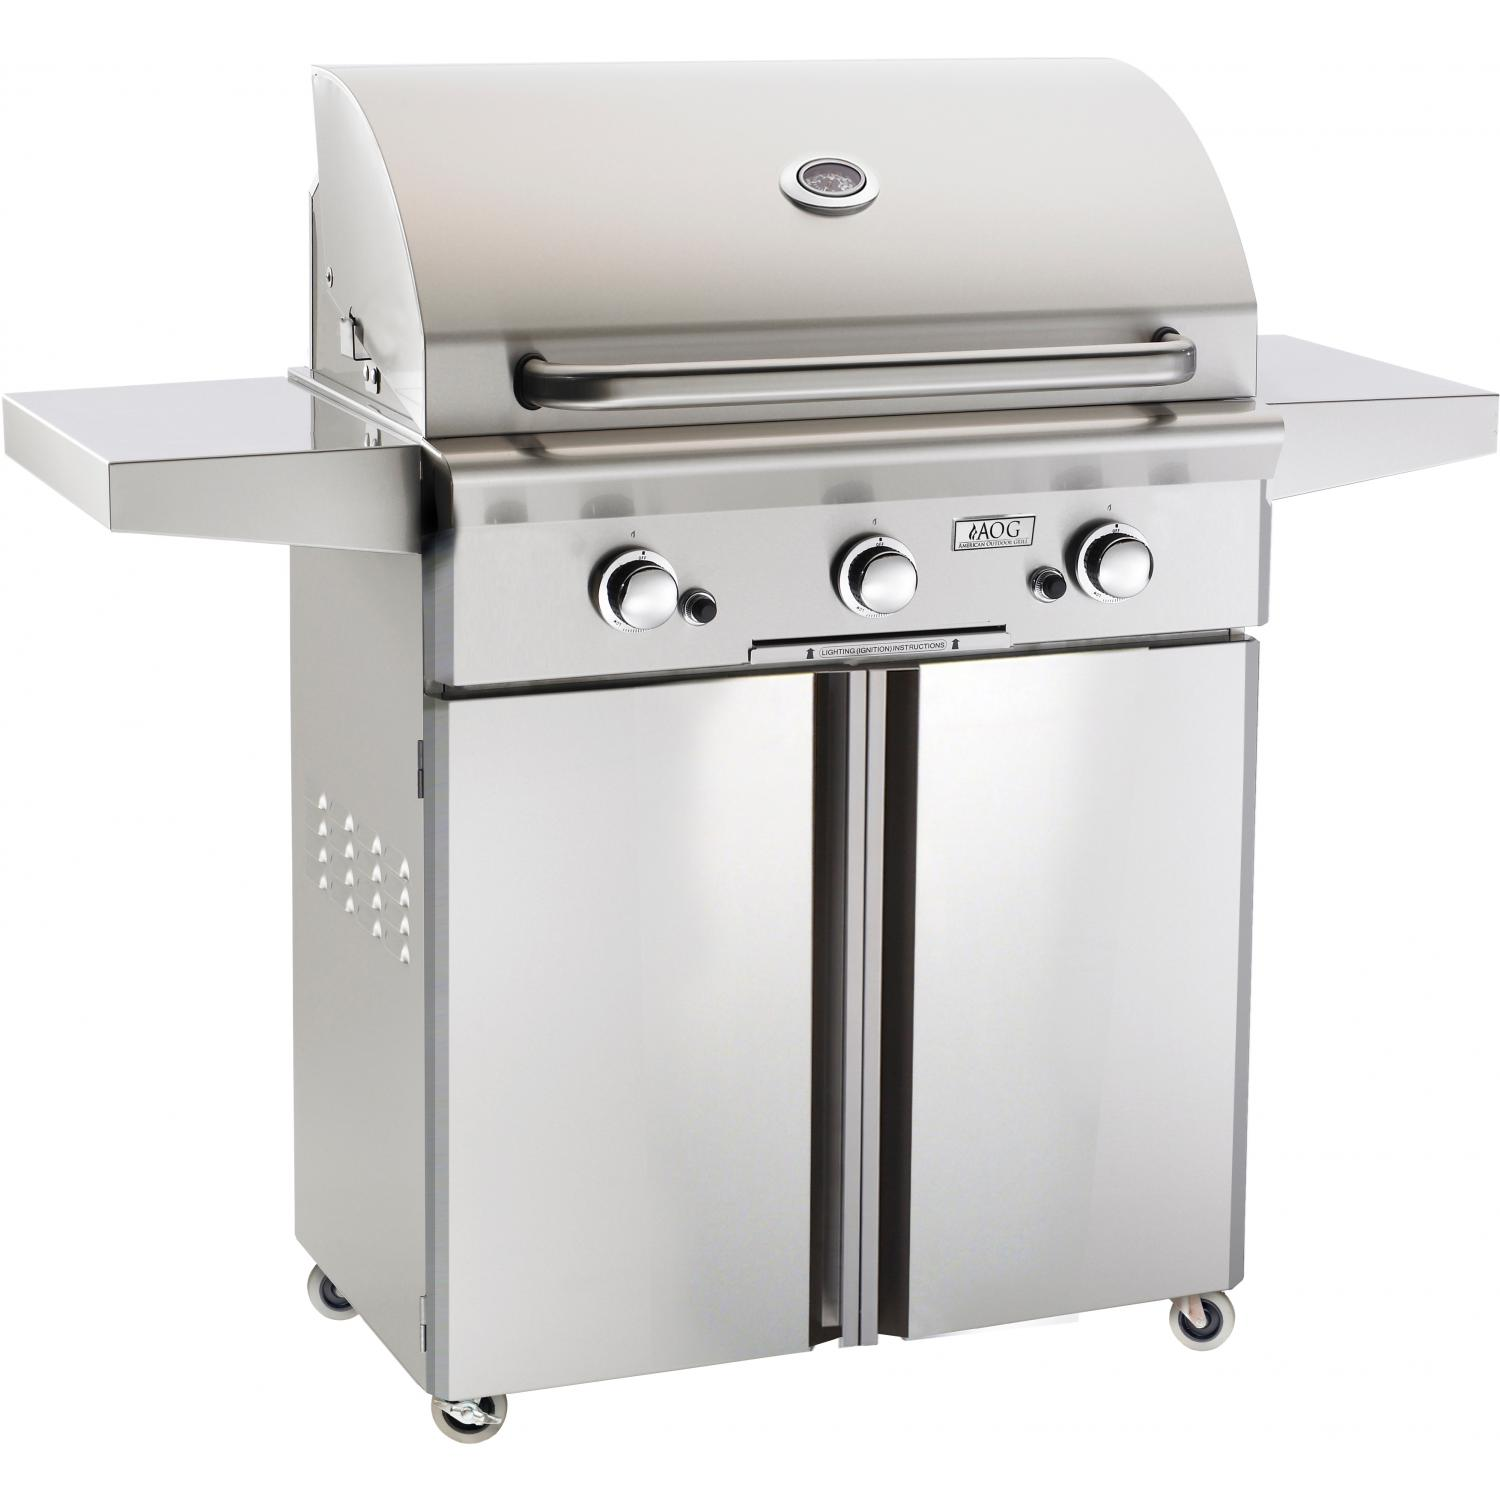 Deals American Outdoor Grill 30 Inch Propane Gas Grill On